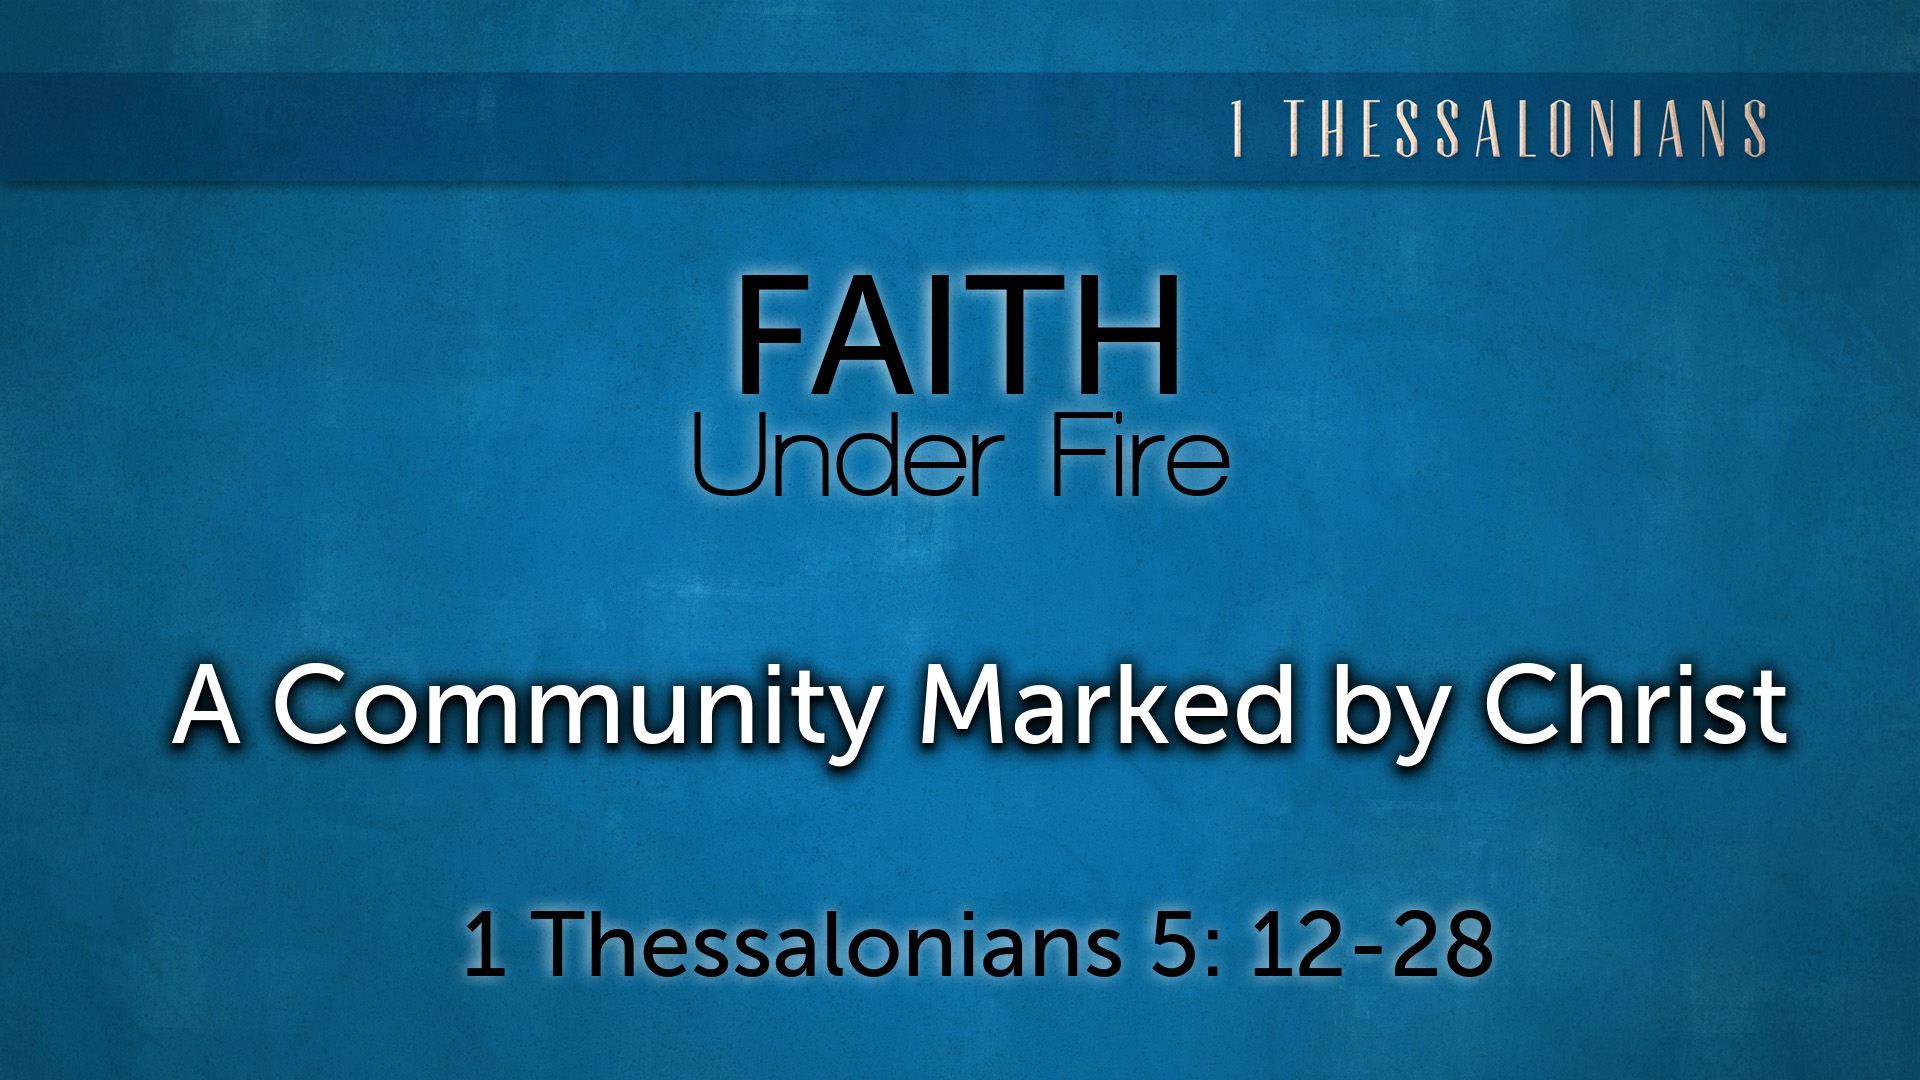 Image for the sermon A Community Marked by Christ